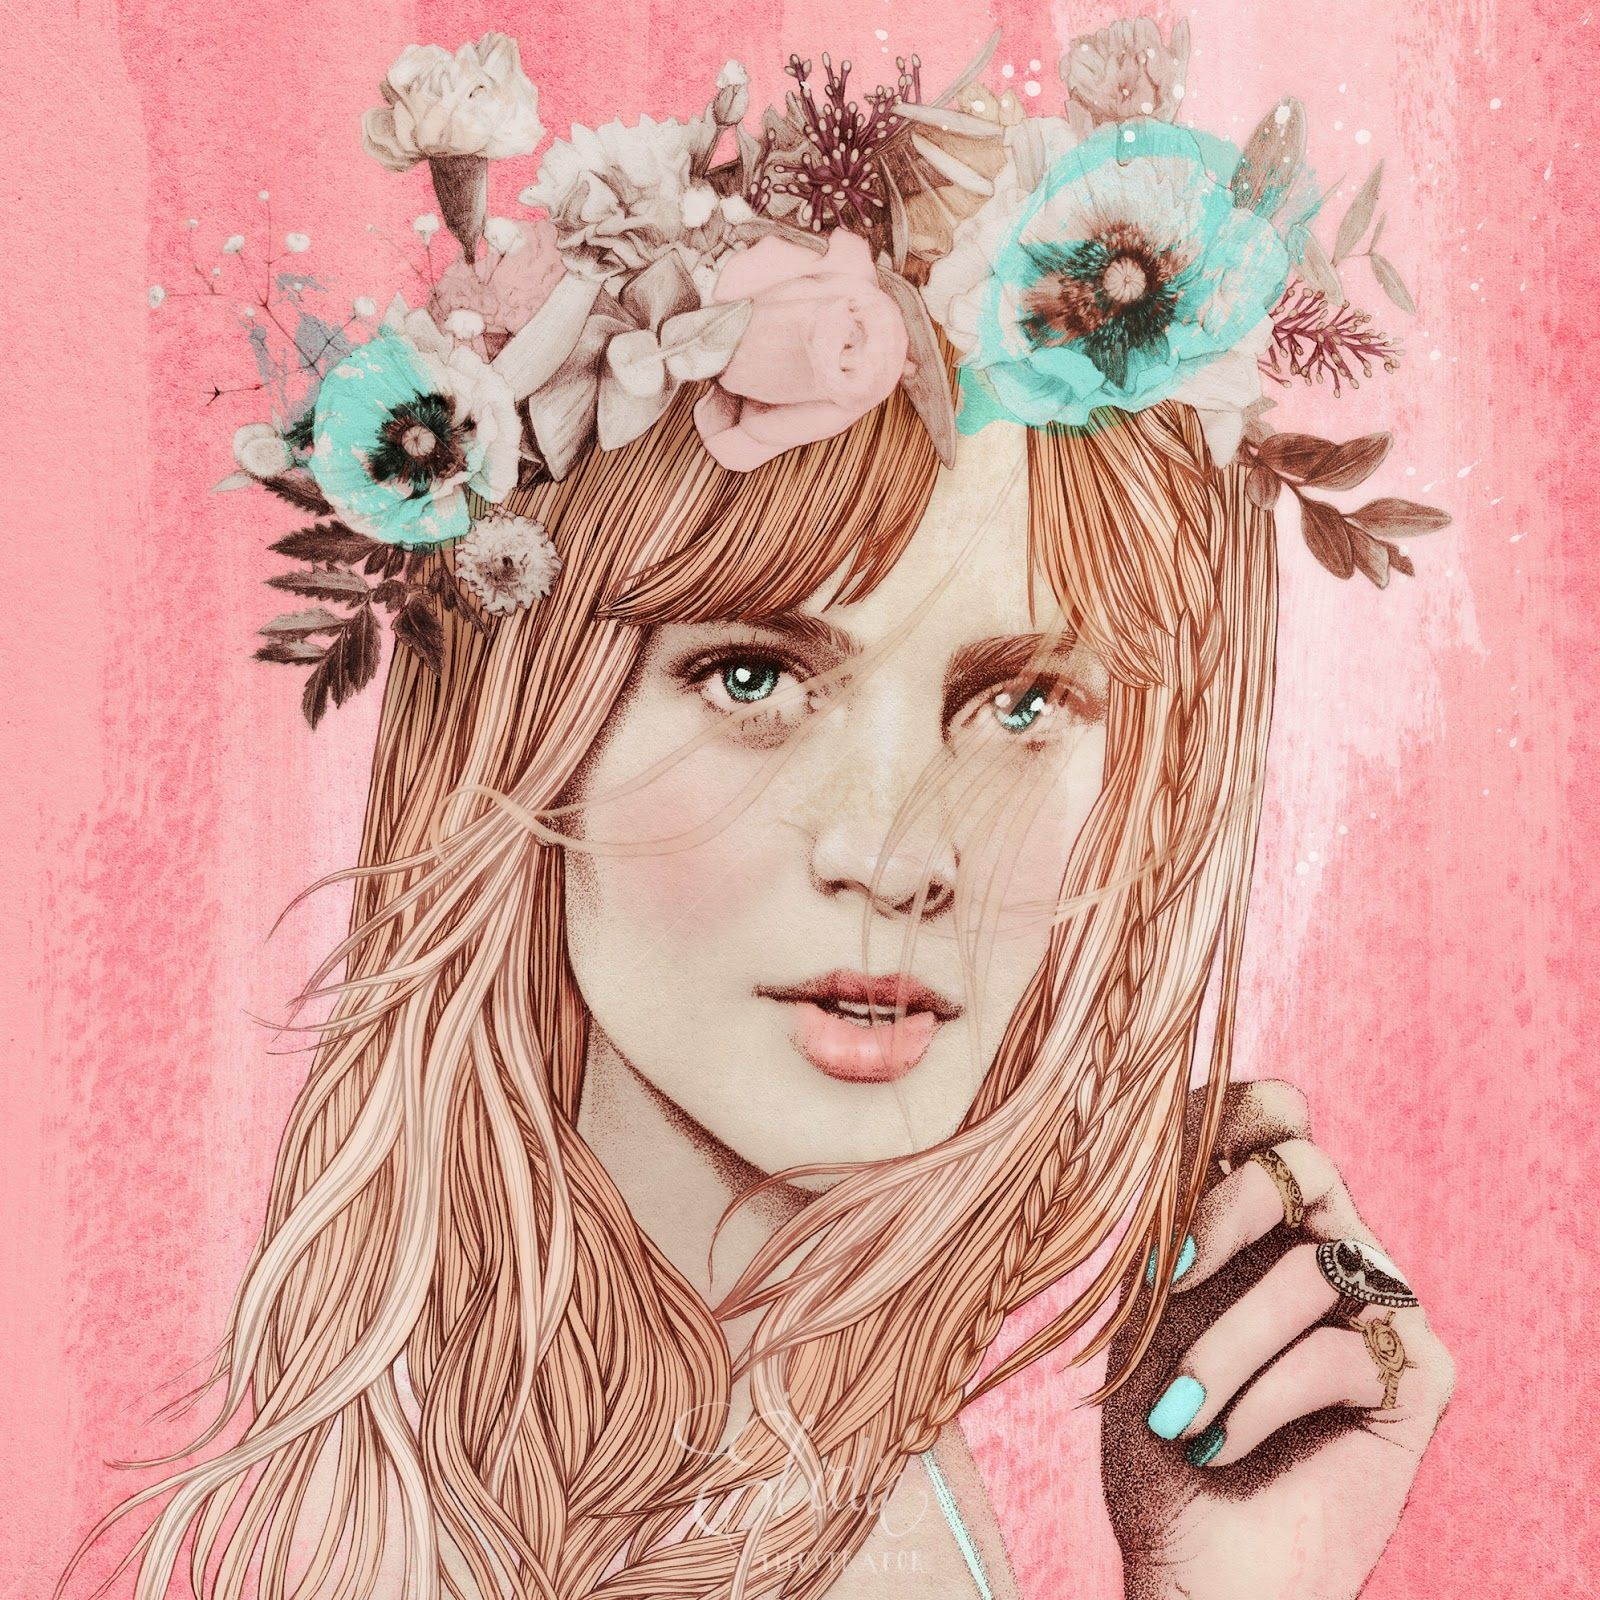 """Jenny, if you are going to our house, please, be sure to wear flowers in your hair. - Illustration by Elodie Nadreau. - Board """"Art-Elodie Nadreau"""". -"""